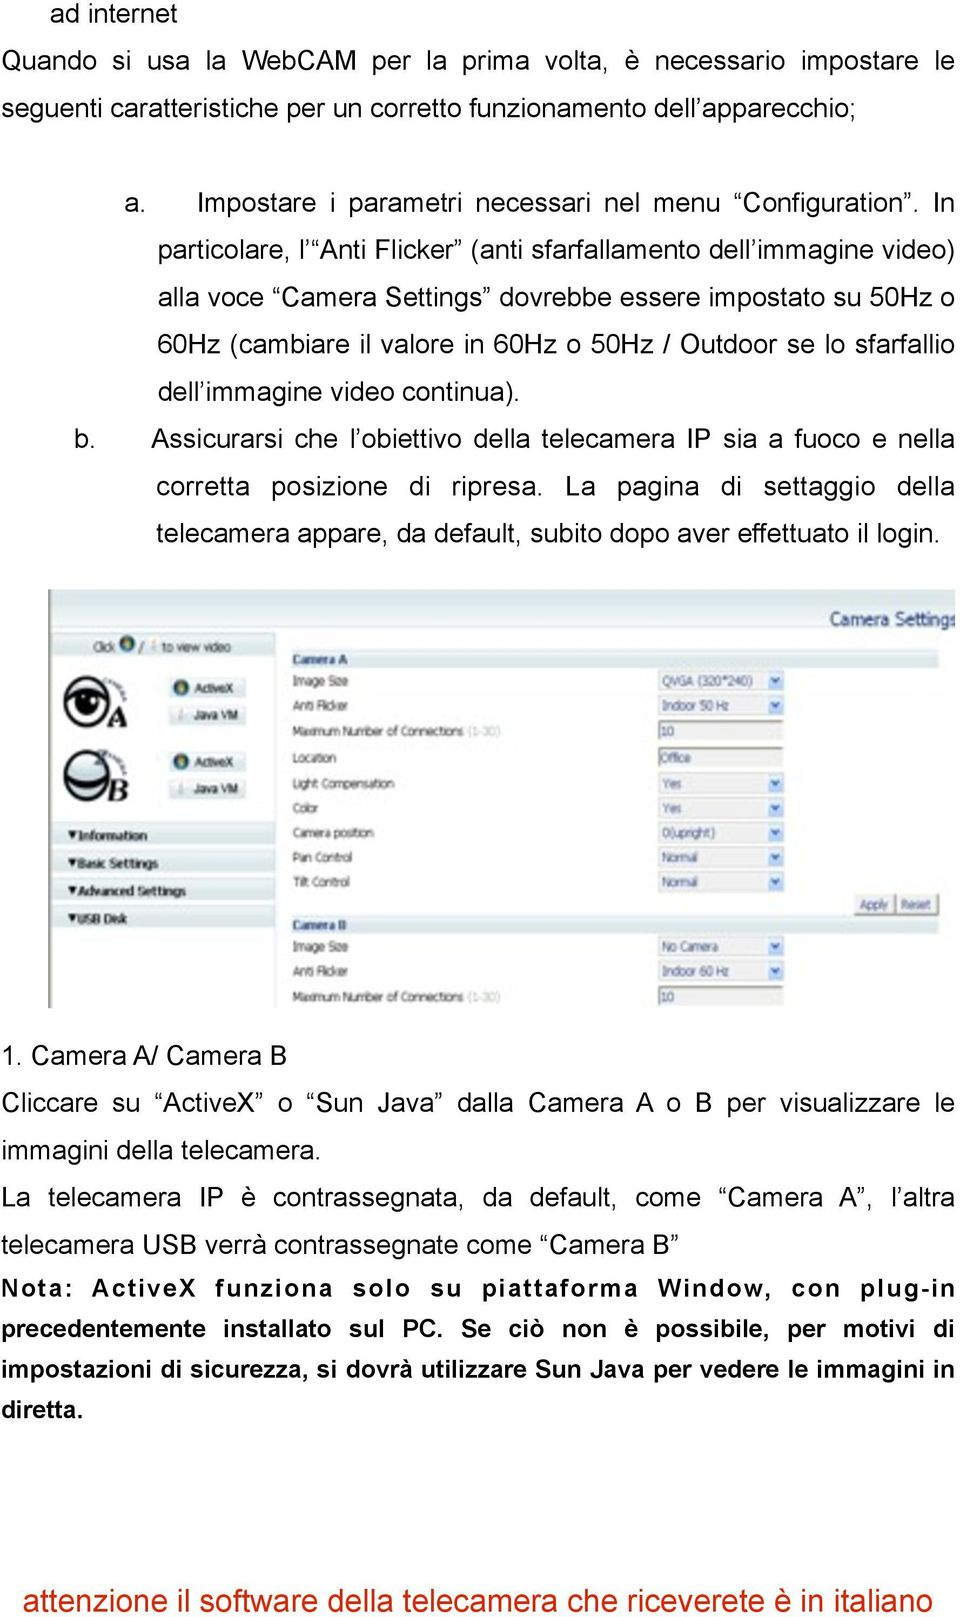 In particolare, l Anti Flicker (anti sfarfallamento dell immagine video) alla voce Camera Settings dovrebbe essere impostato su 50Hz o 60Hz (cambiare il valore in 60Hz o 50Hz / Outdoor se lo